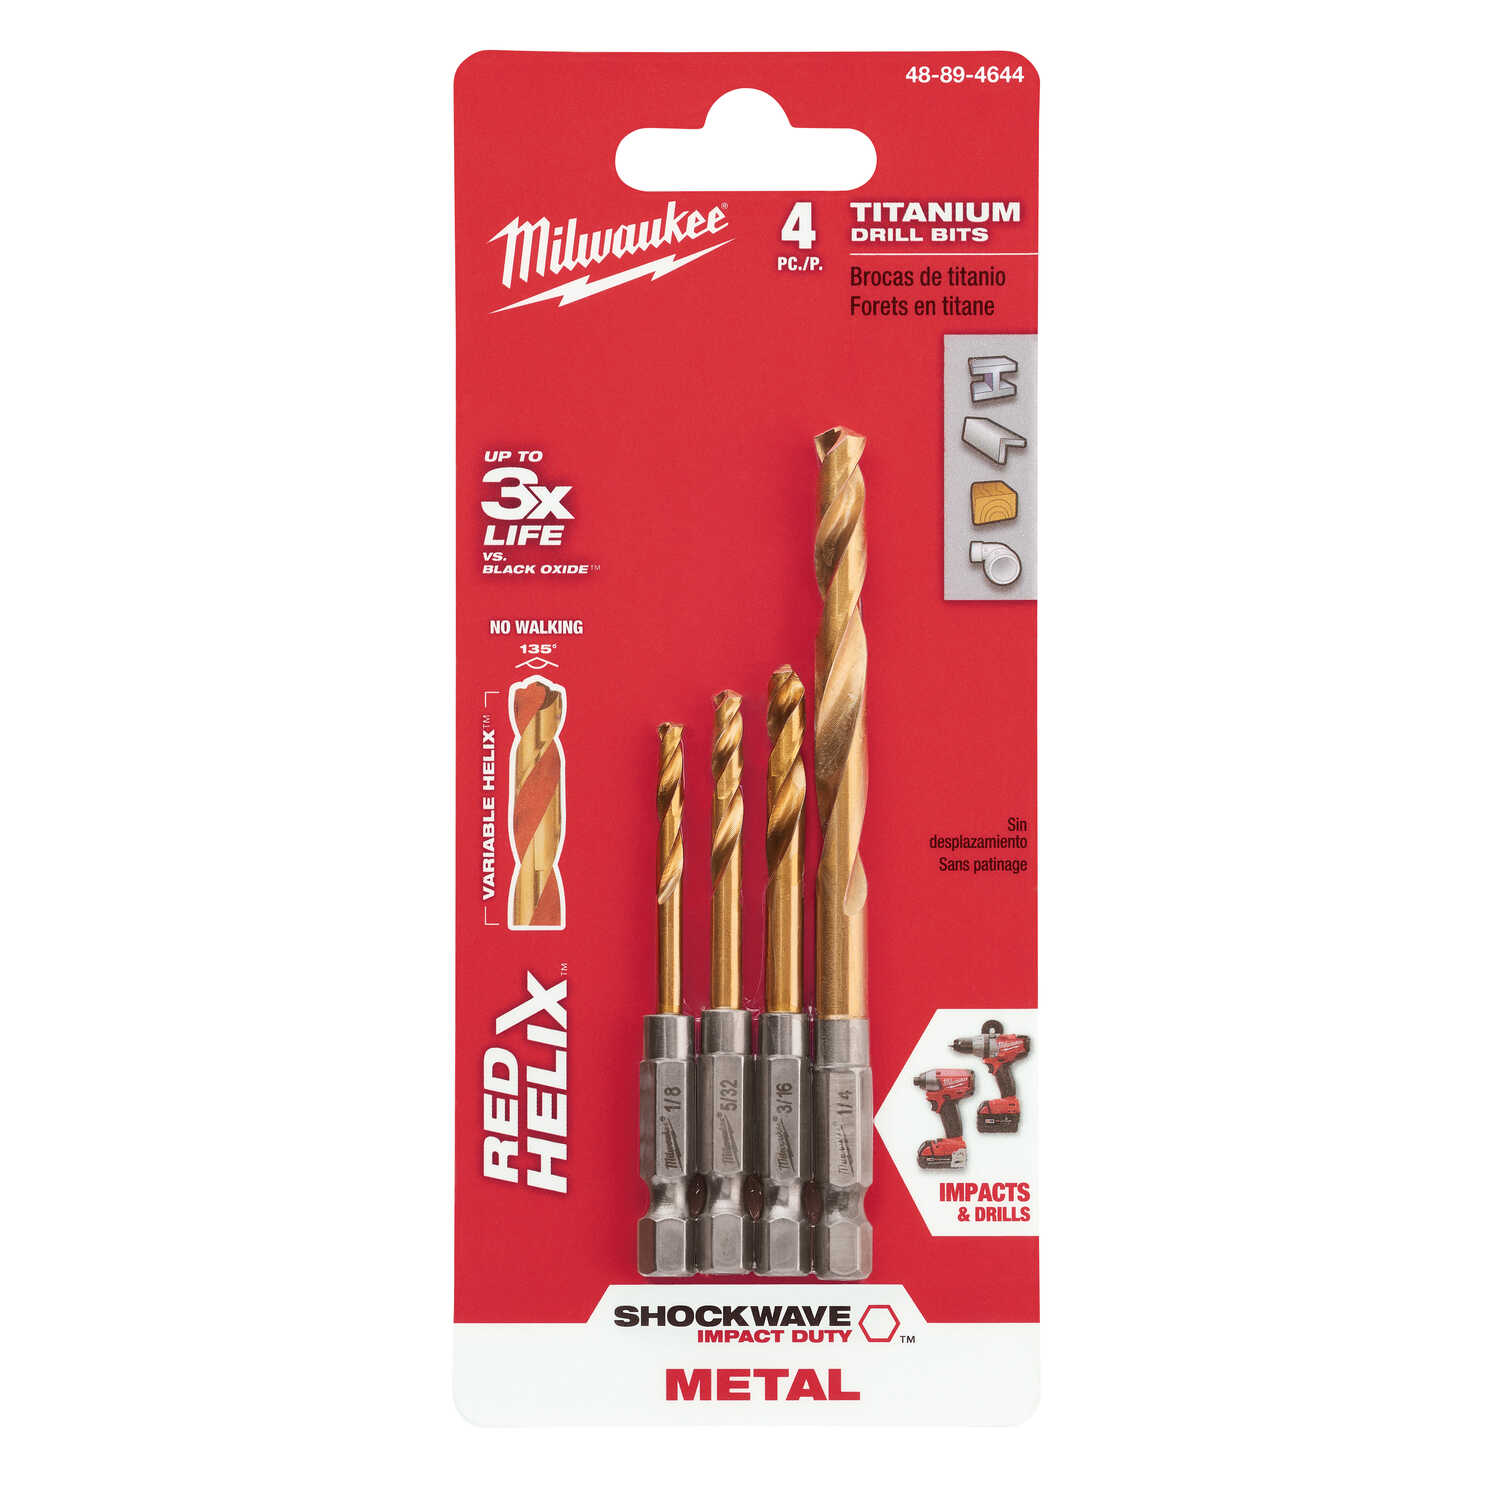 Milwaukee  SHOCKWAVE  Assorted  Dia. Titanium  RED HELIX  1/4 in. Quick-Change Hex Shank  4 pc. Impa